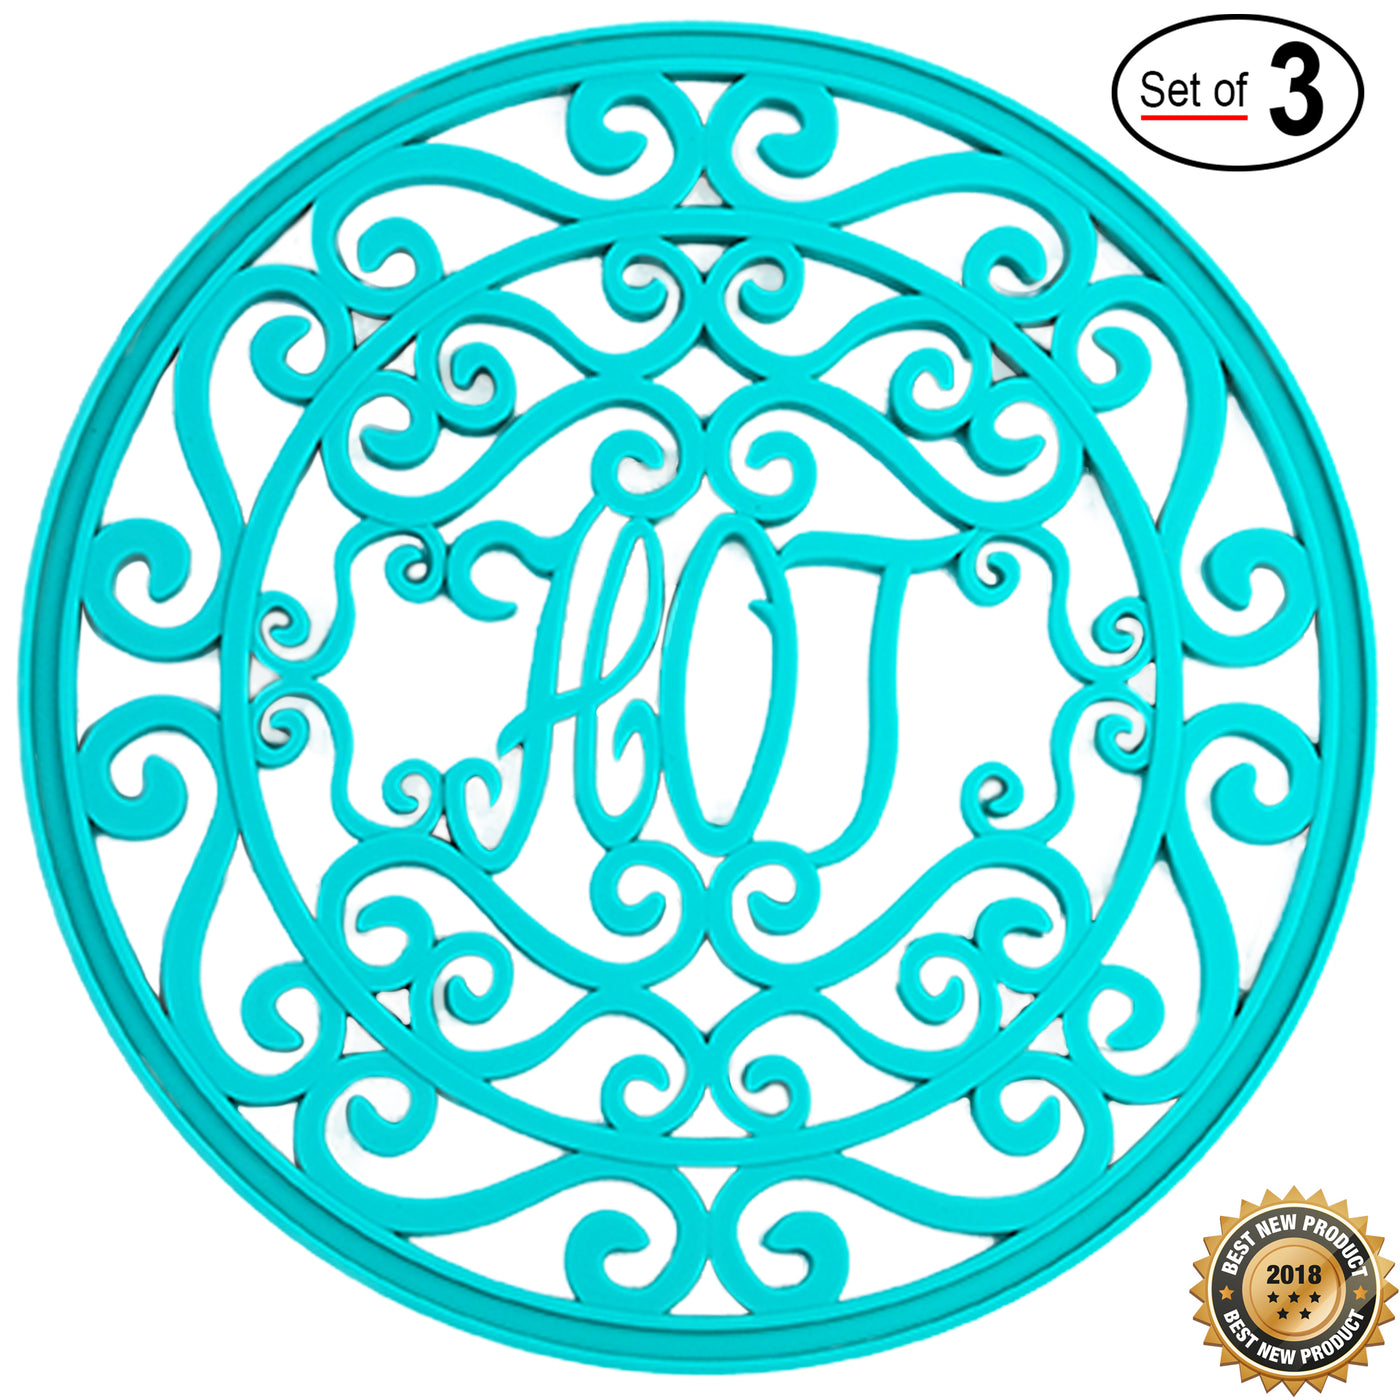 Premium Silicone Trivet Set For Hot Dishes, Pots & Pans; 'Hot Ironworks' Design Mimics Cast Iron Trivets (7.5 inches)